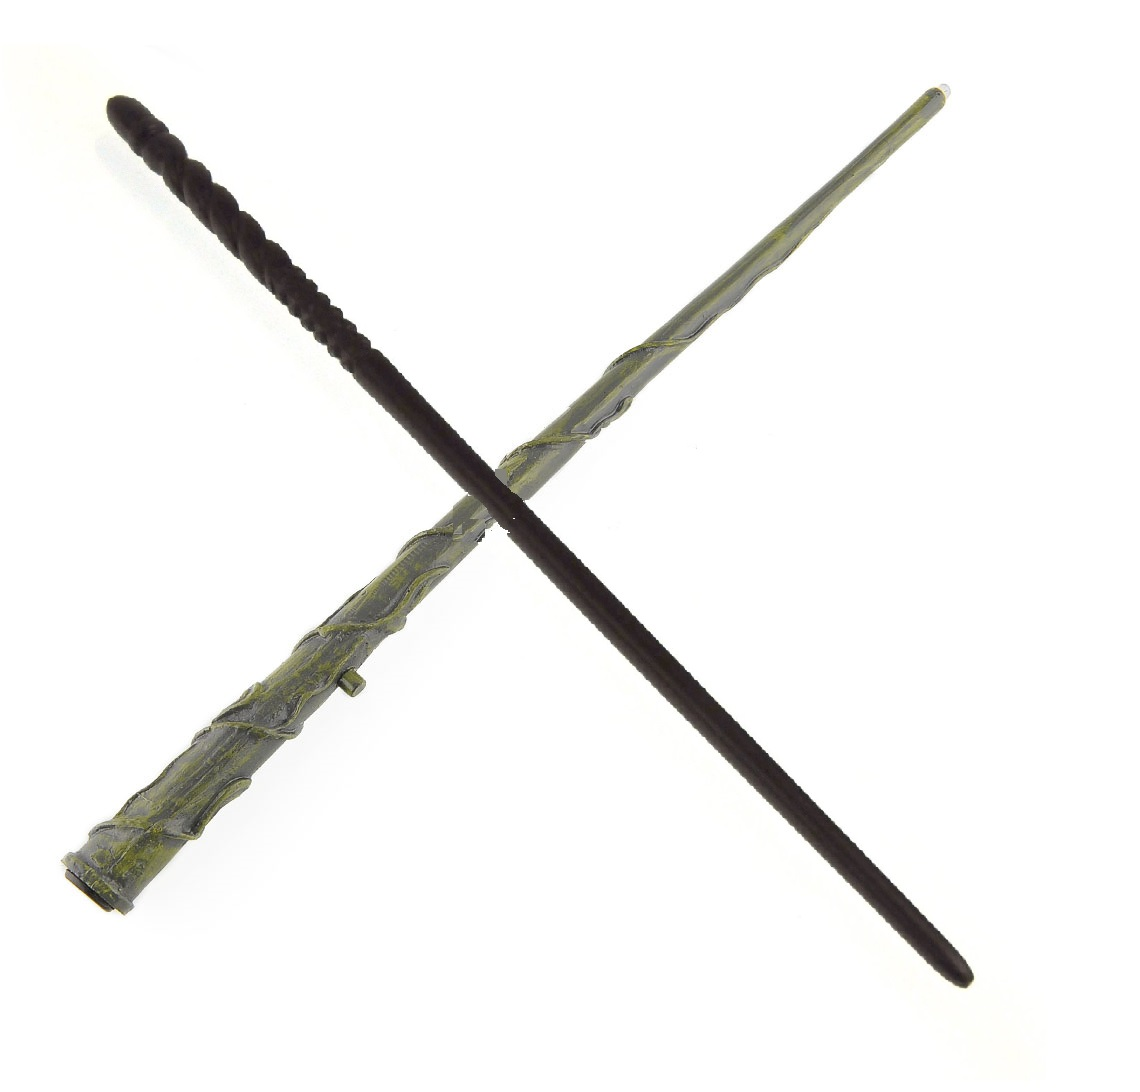 Holly and Oak Wands